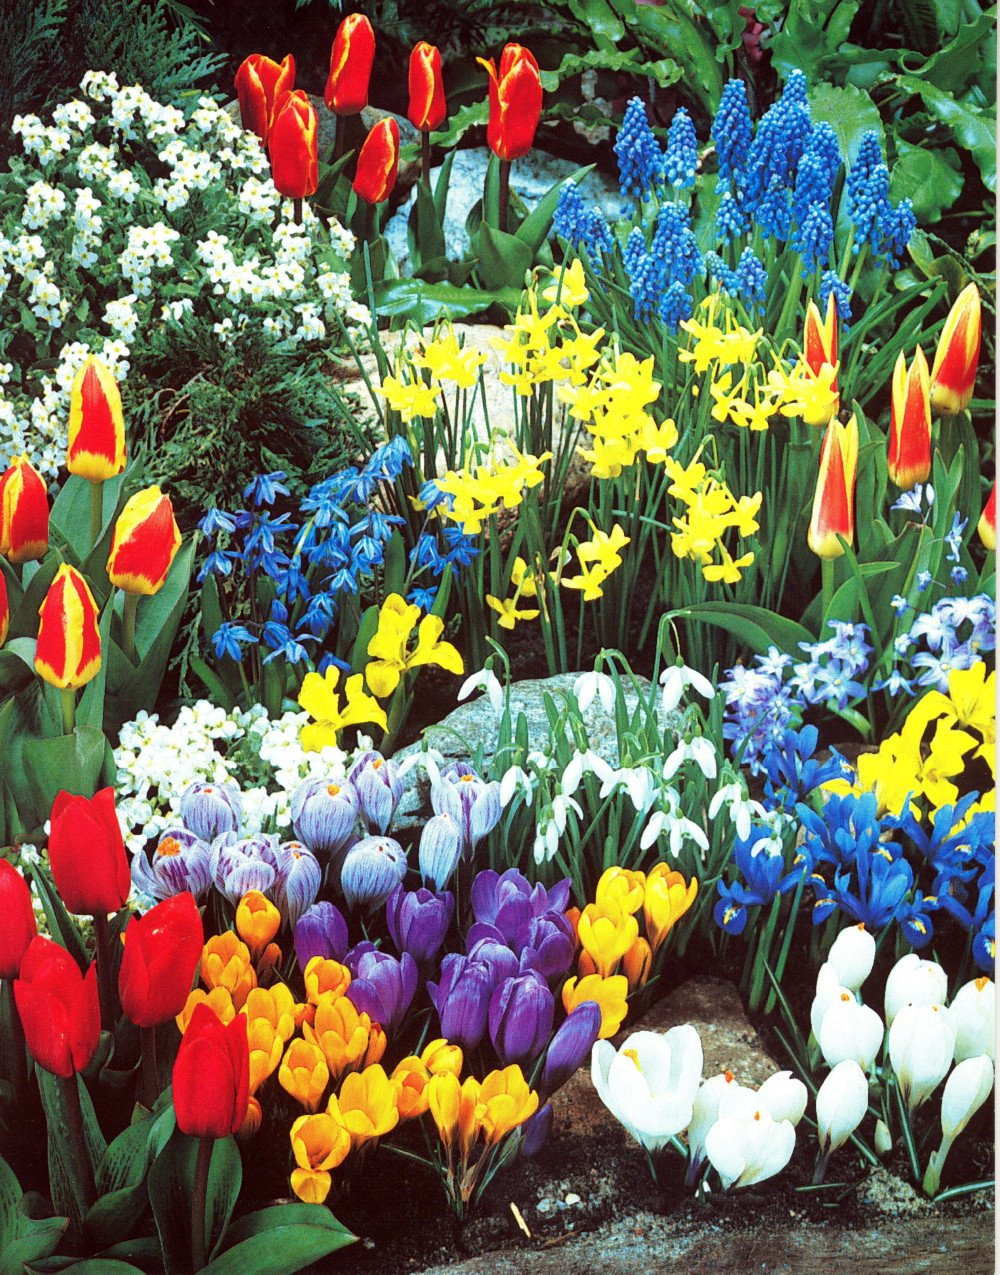 A Complete Spring Garden - 50 Bulbs for 50 Days of Continuous Blooms Hirt' s Gardens